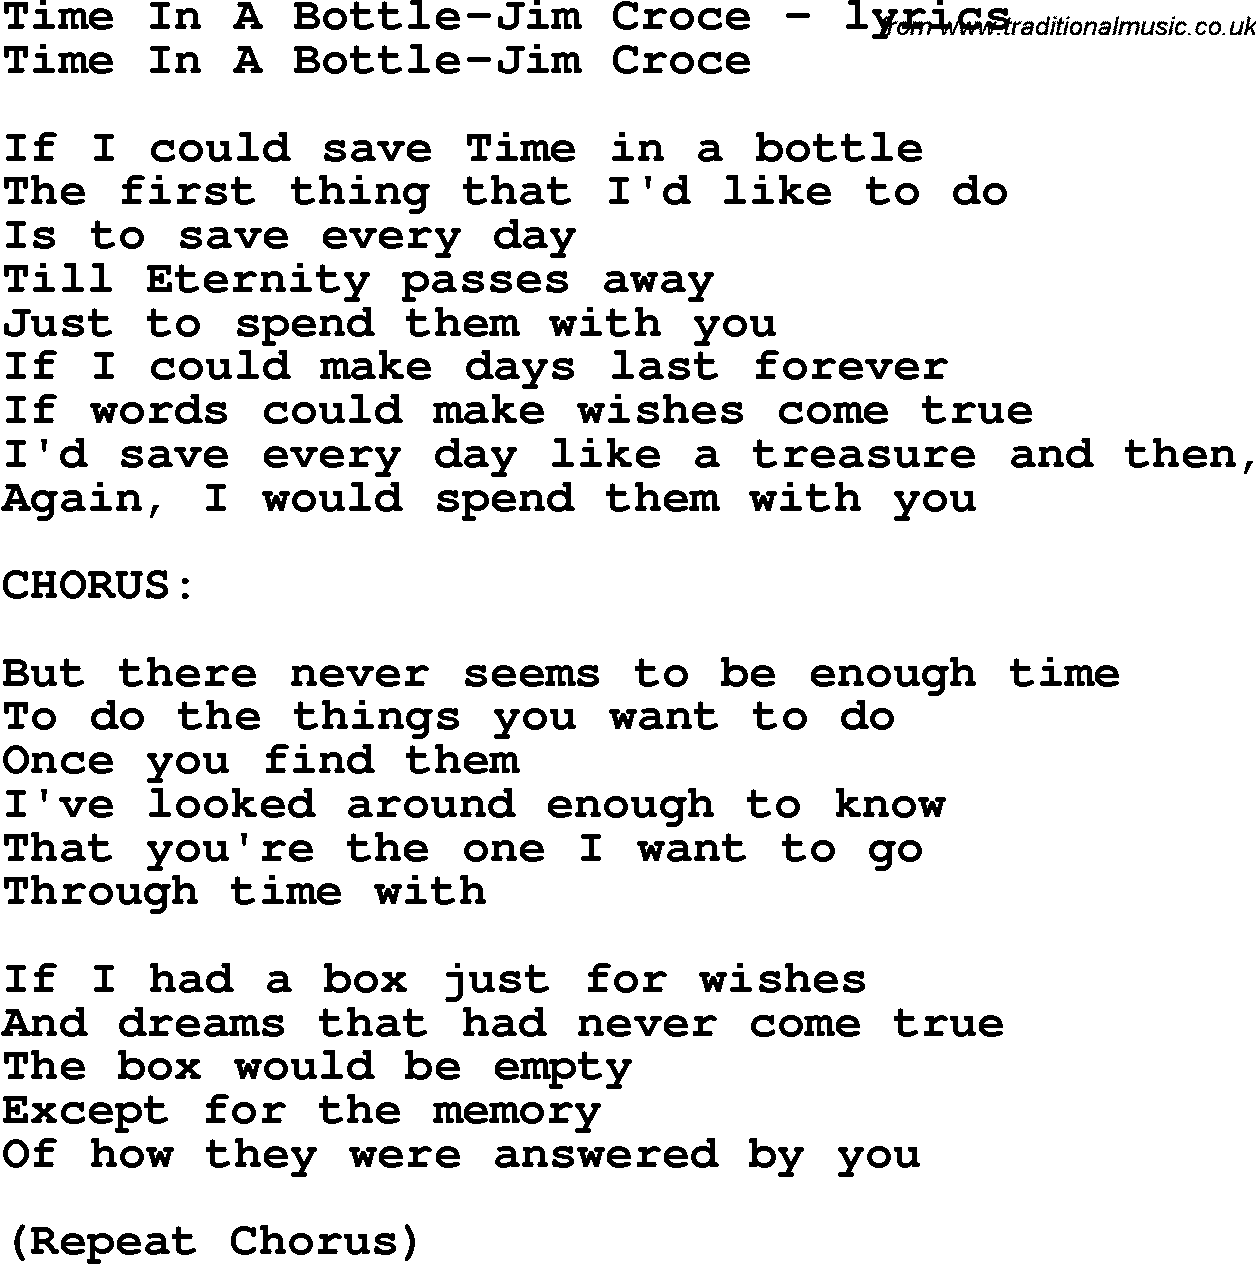 Time in a bottle chords and lyrics